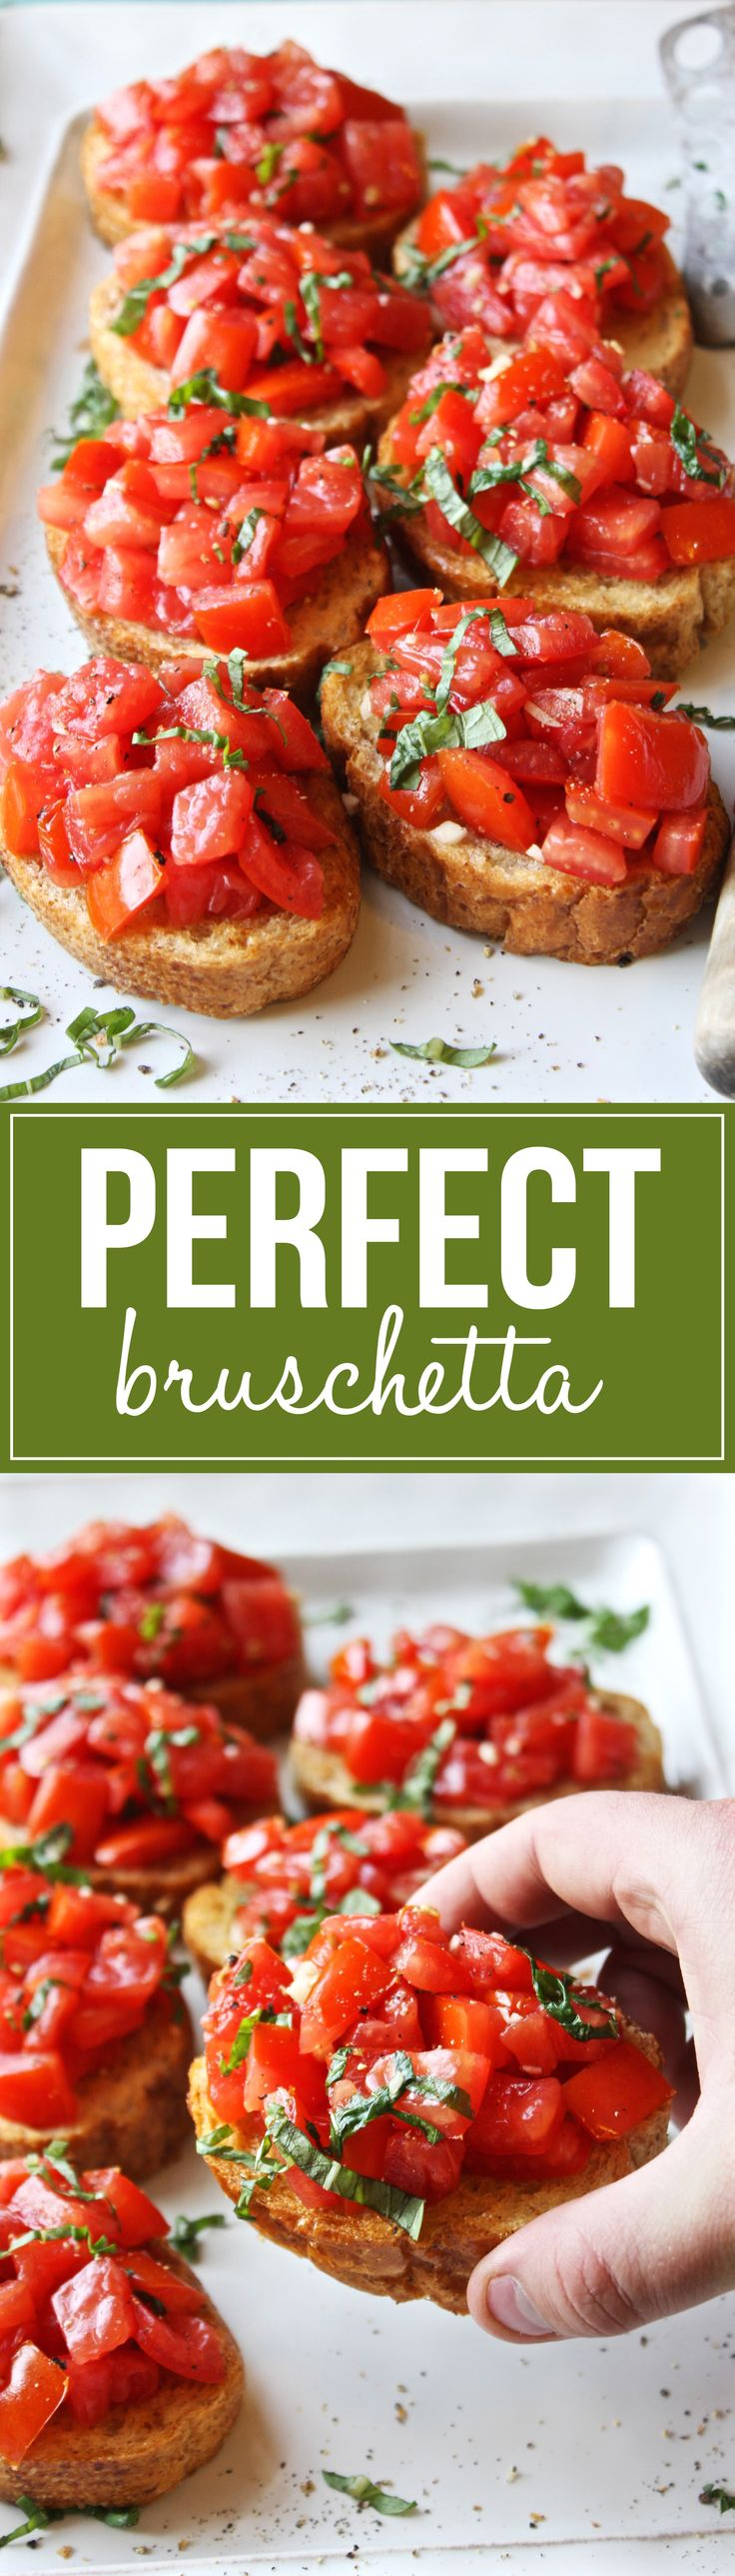 bruschetta | healthy recipe ideas @xhealthyrecipex |